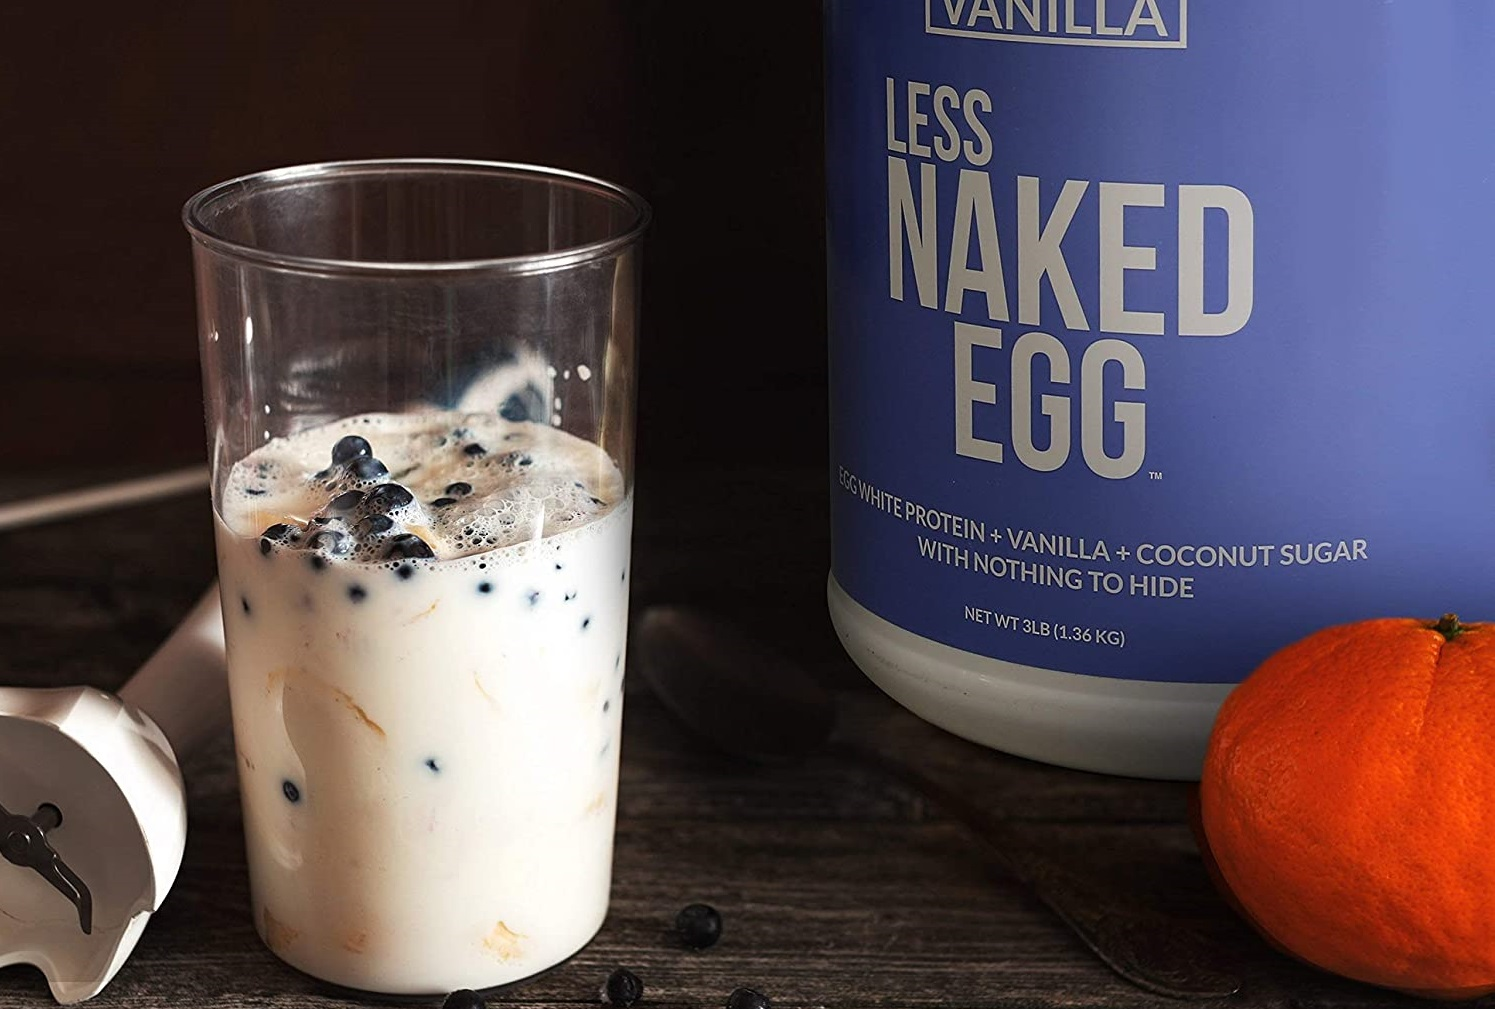 Best Egg Protein Powder